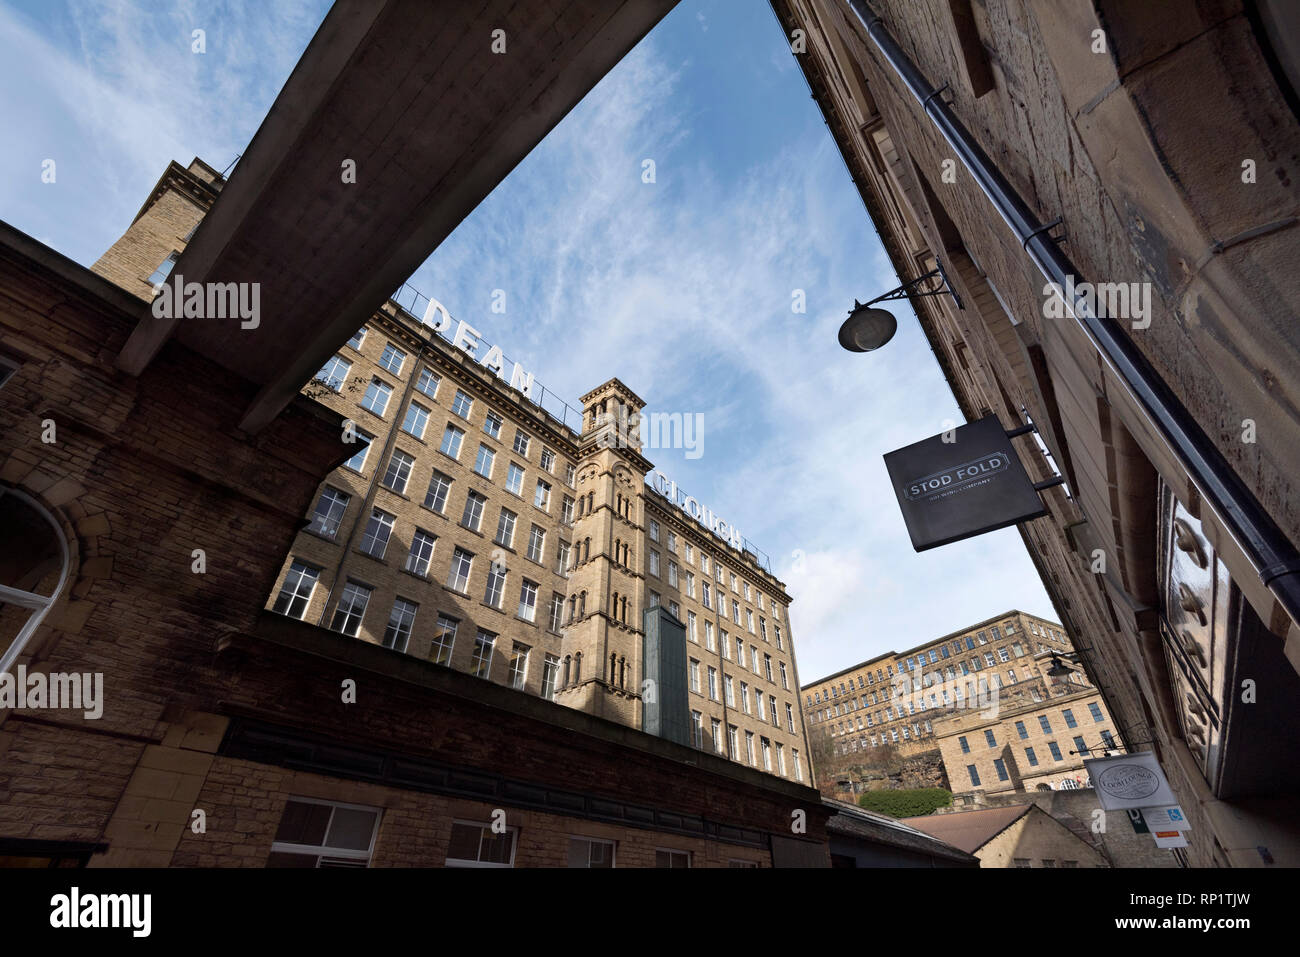 Halifax, West Yorkshire. The regenerated Dean Clough Mills. - Stock Image